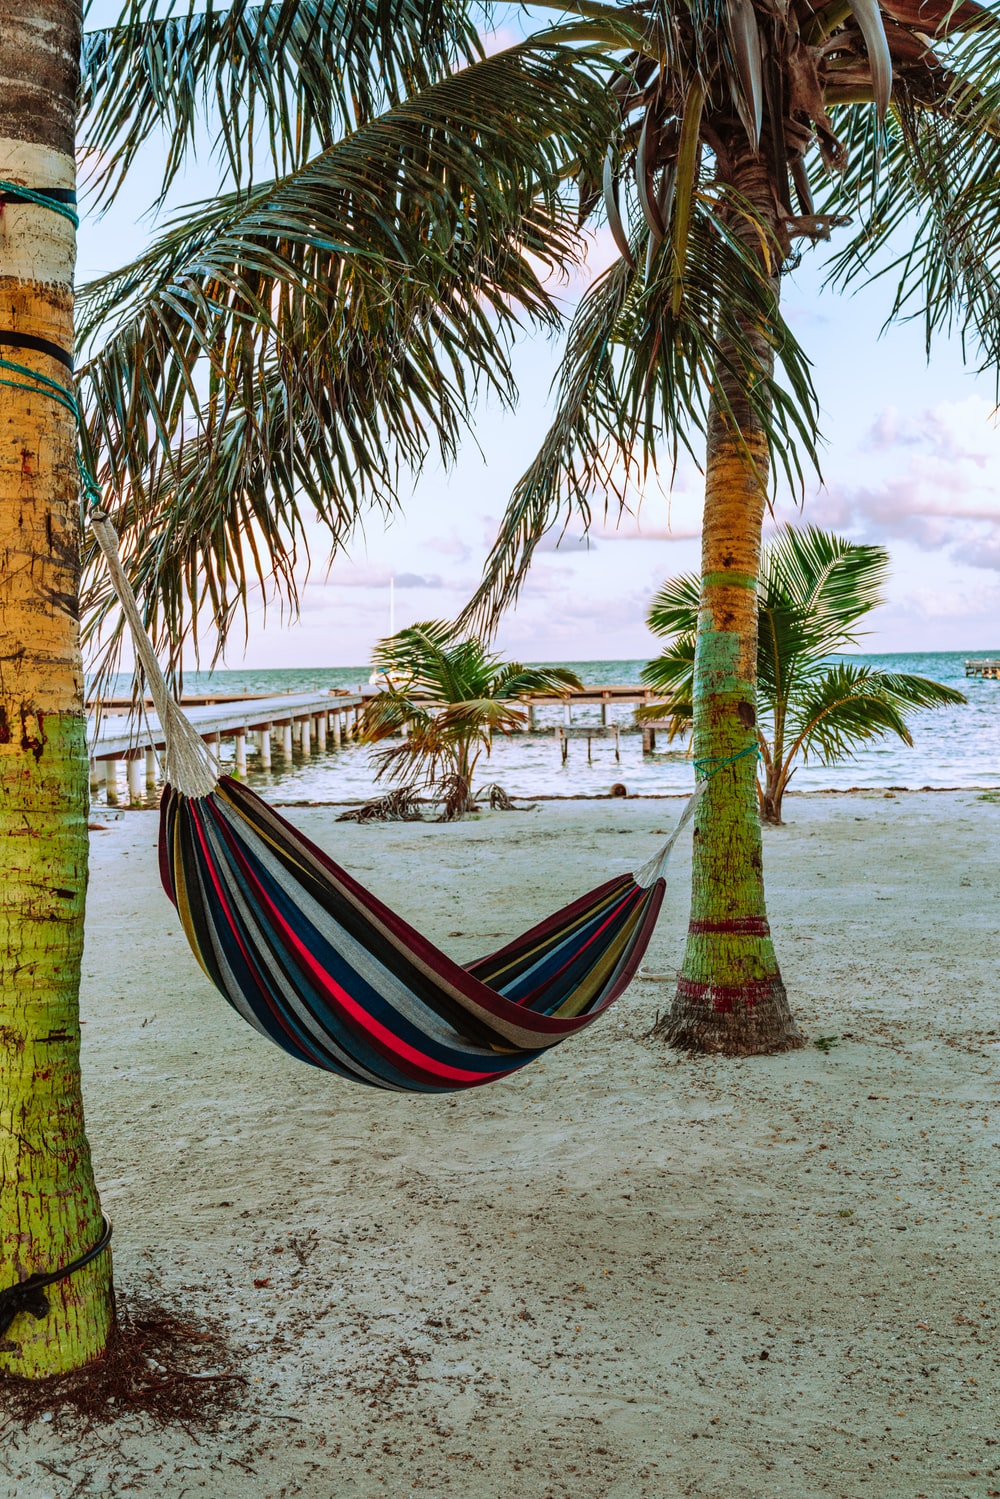 blue red and yellow hammock hanged on palm tree near beach during daytime